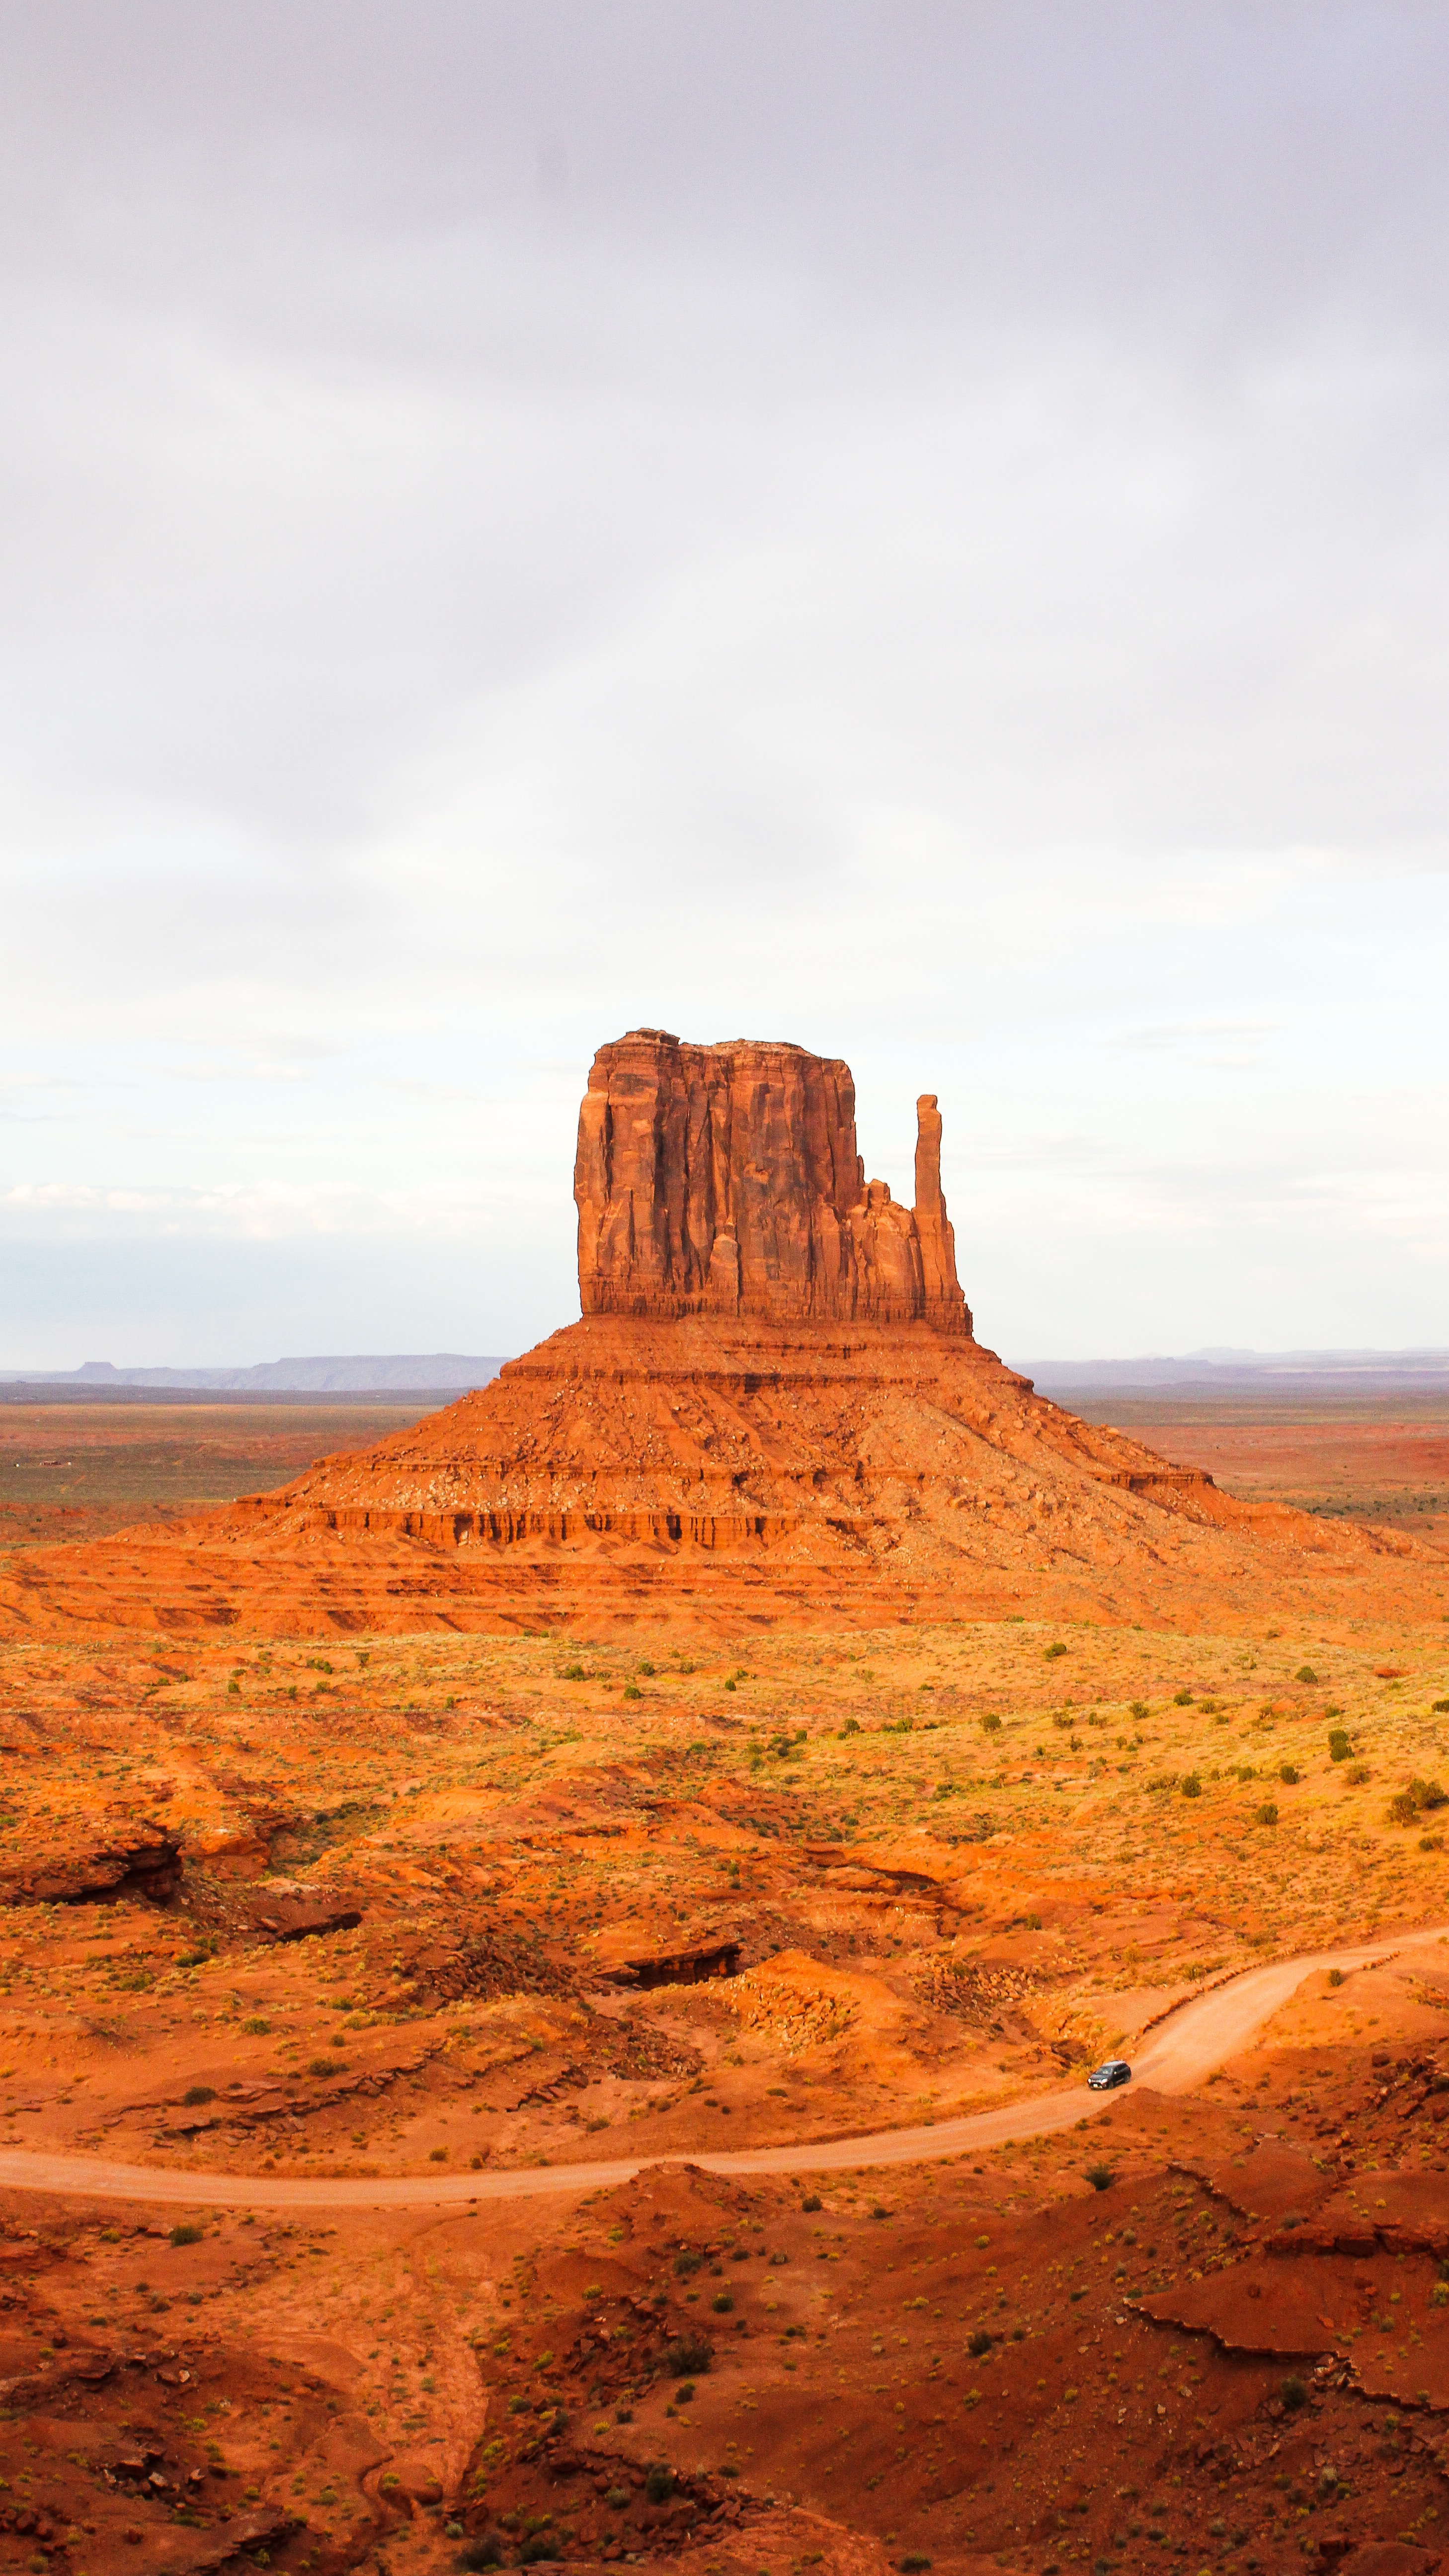 141423 download wallpaper Nature, Rock, Canyon, Brown, Desert, Landscape screensavers and pictures for free